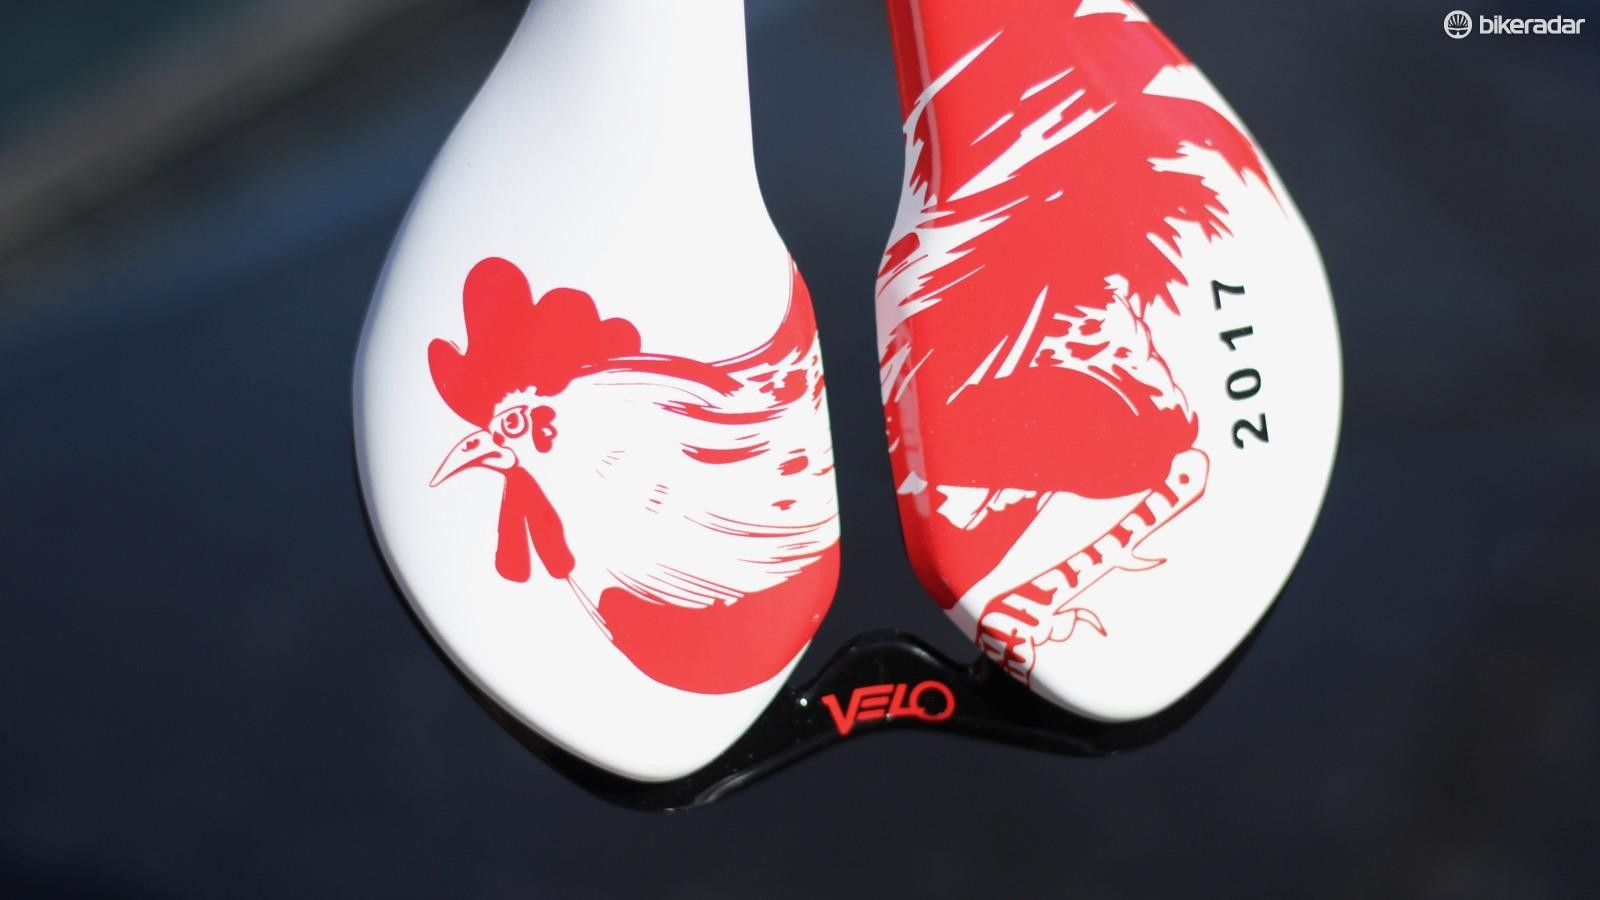 Velo who? Velo Saddles is the largest high-end saddle manufacturer and the Taiwanese company makes perches for many big saddle brands